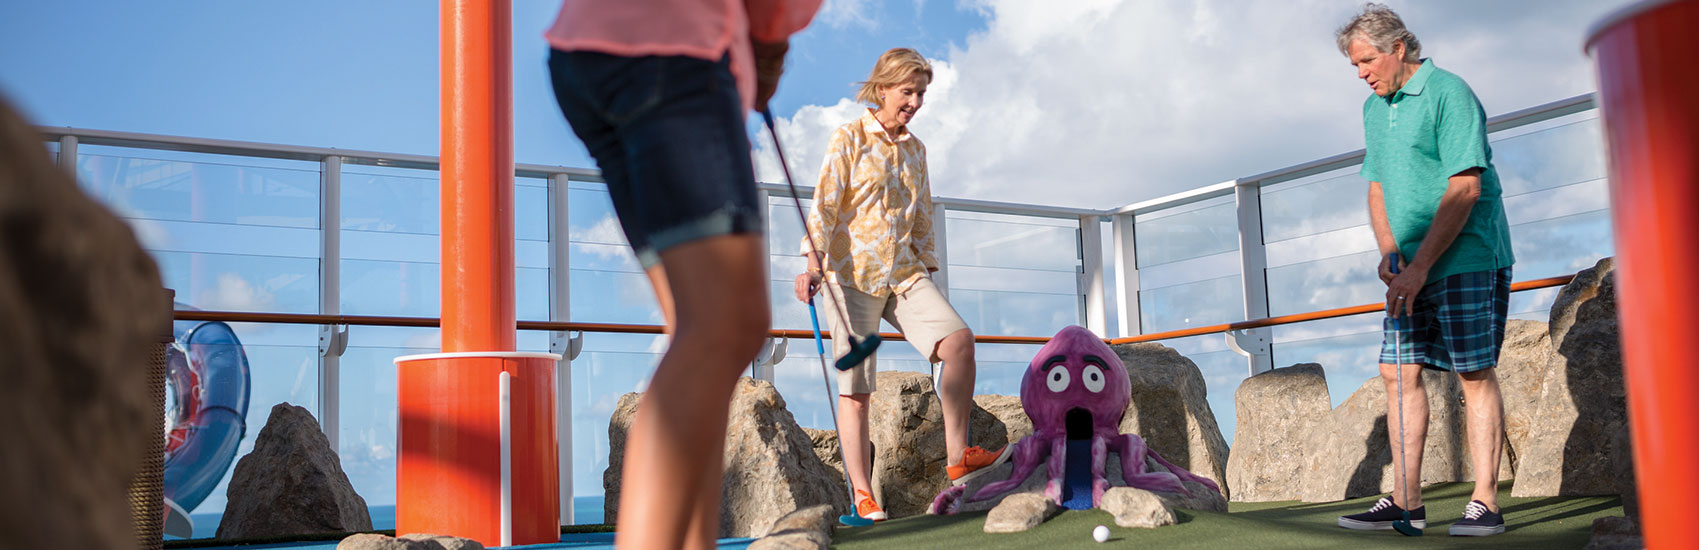 Celebrate Family with Norwegian Cruise Line